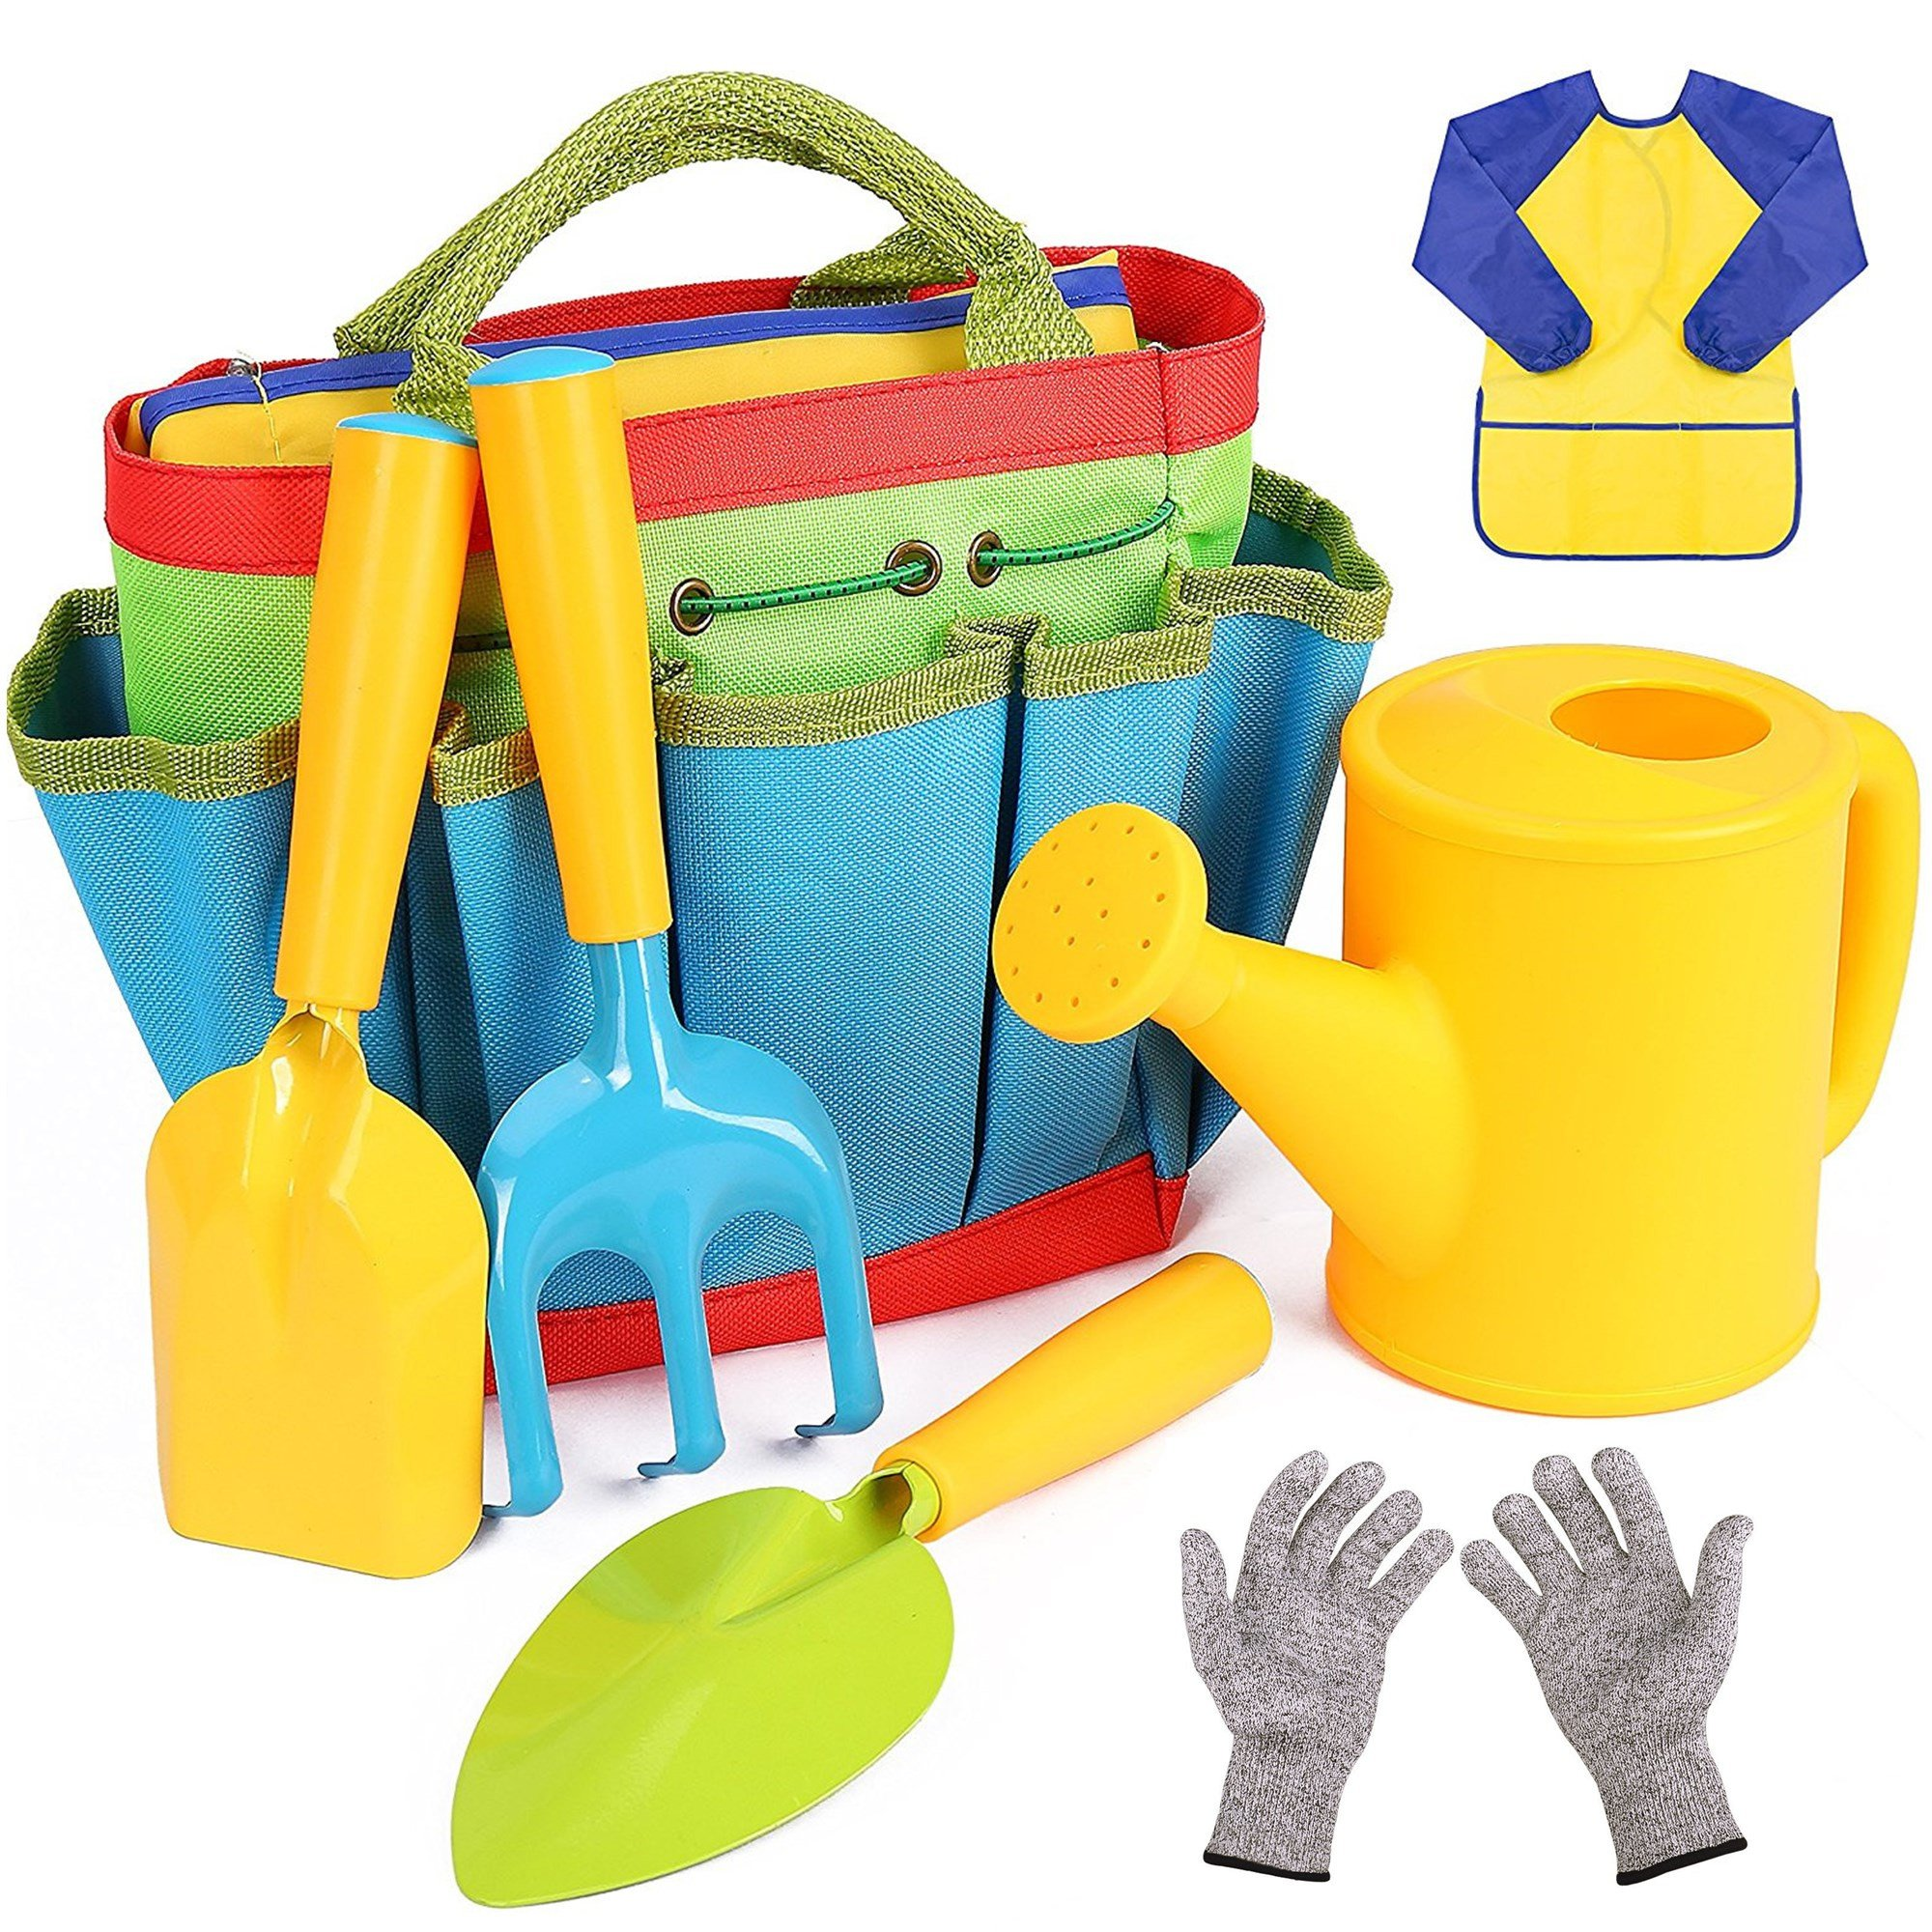 Flykin Kids Gardening Tools, 7 Piece Garden tool set for Kids with Watering Can, Gardening Gloves, Shovel, Rake, Trowel and Kids Smock, All in One Gardening Tote